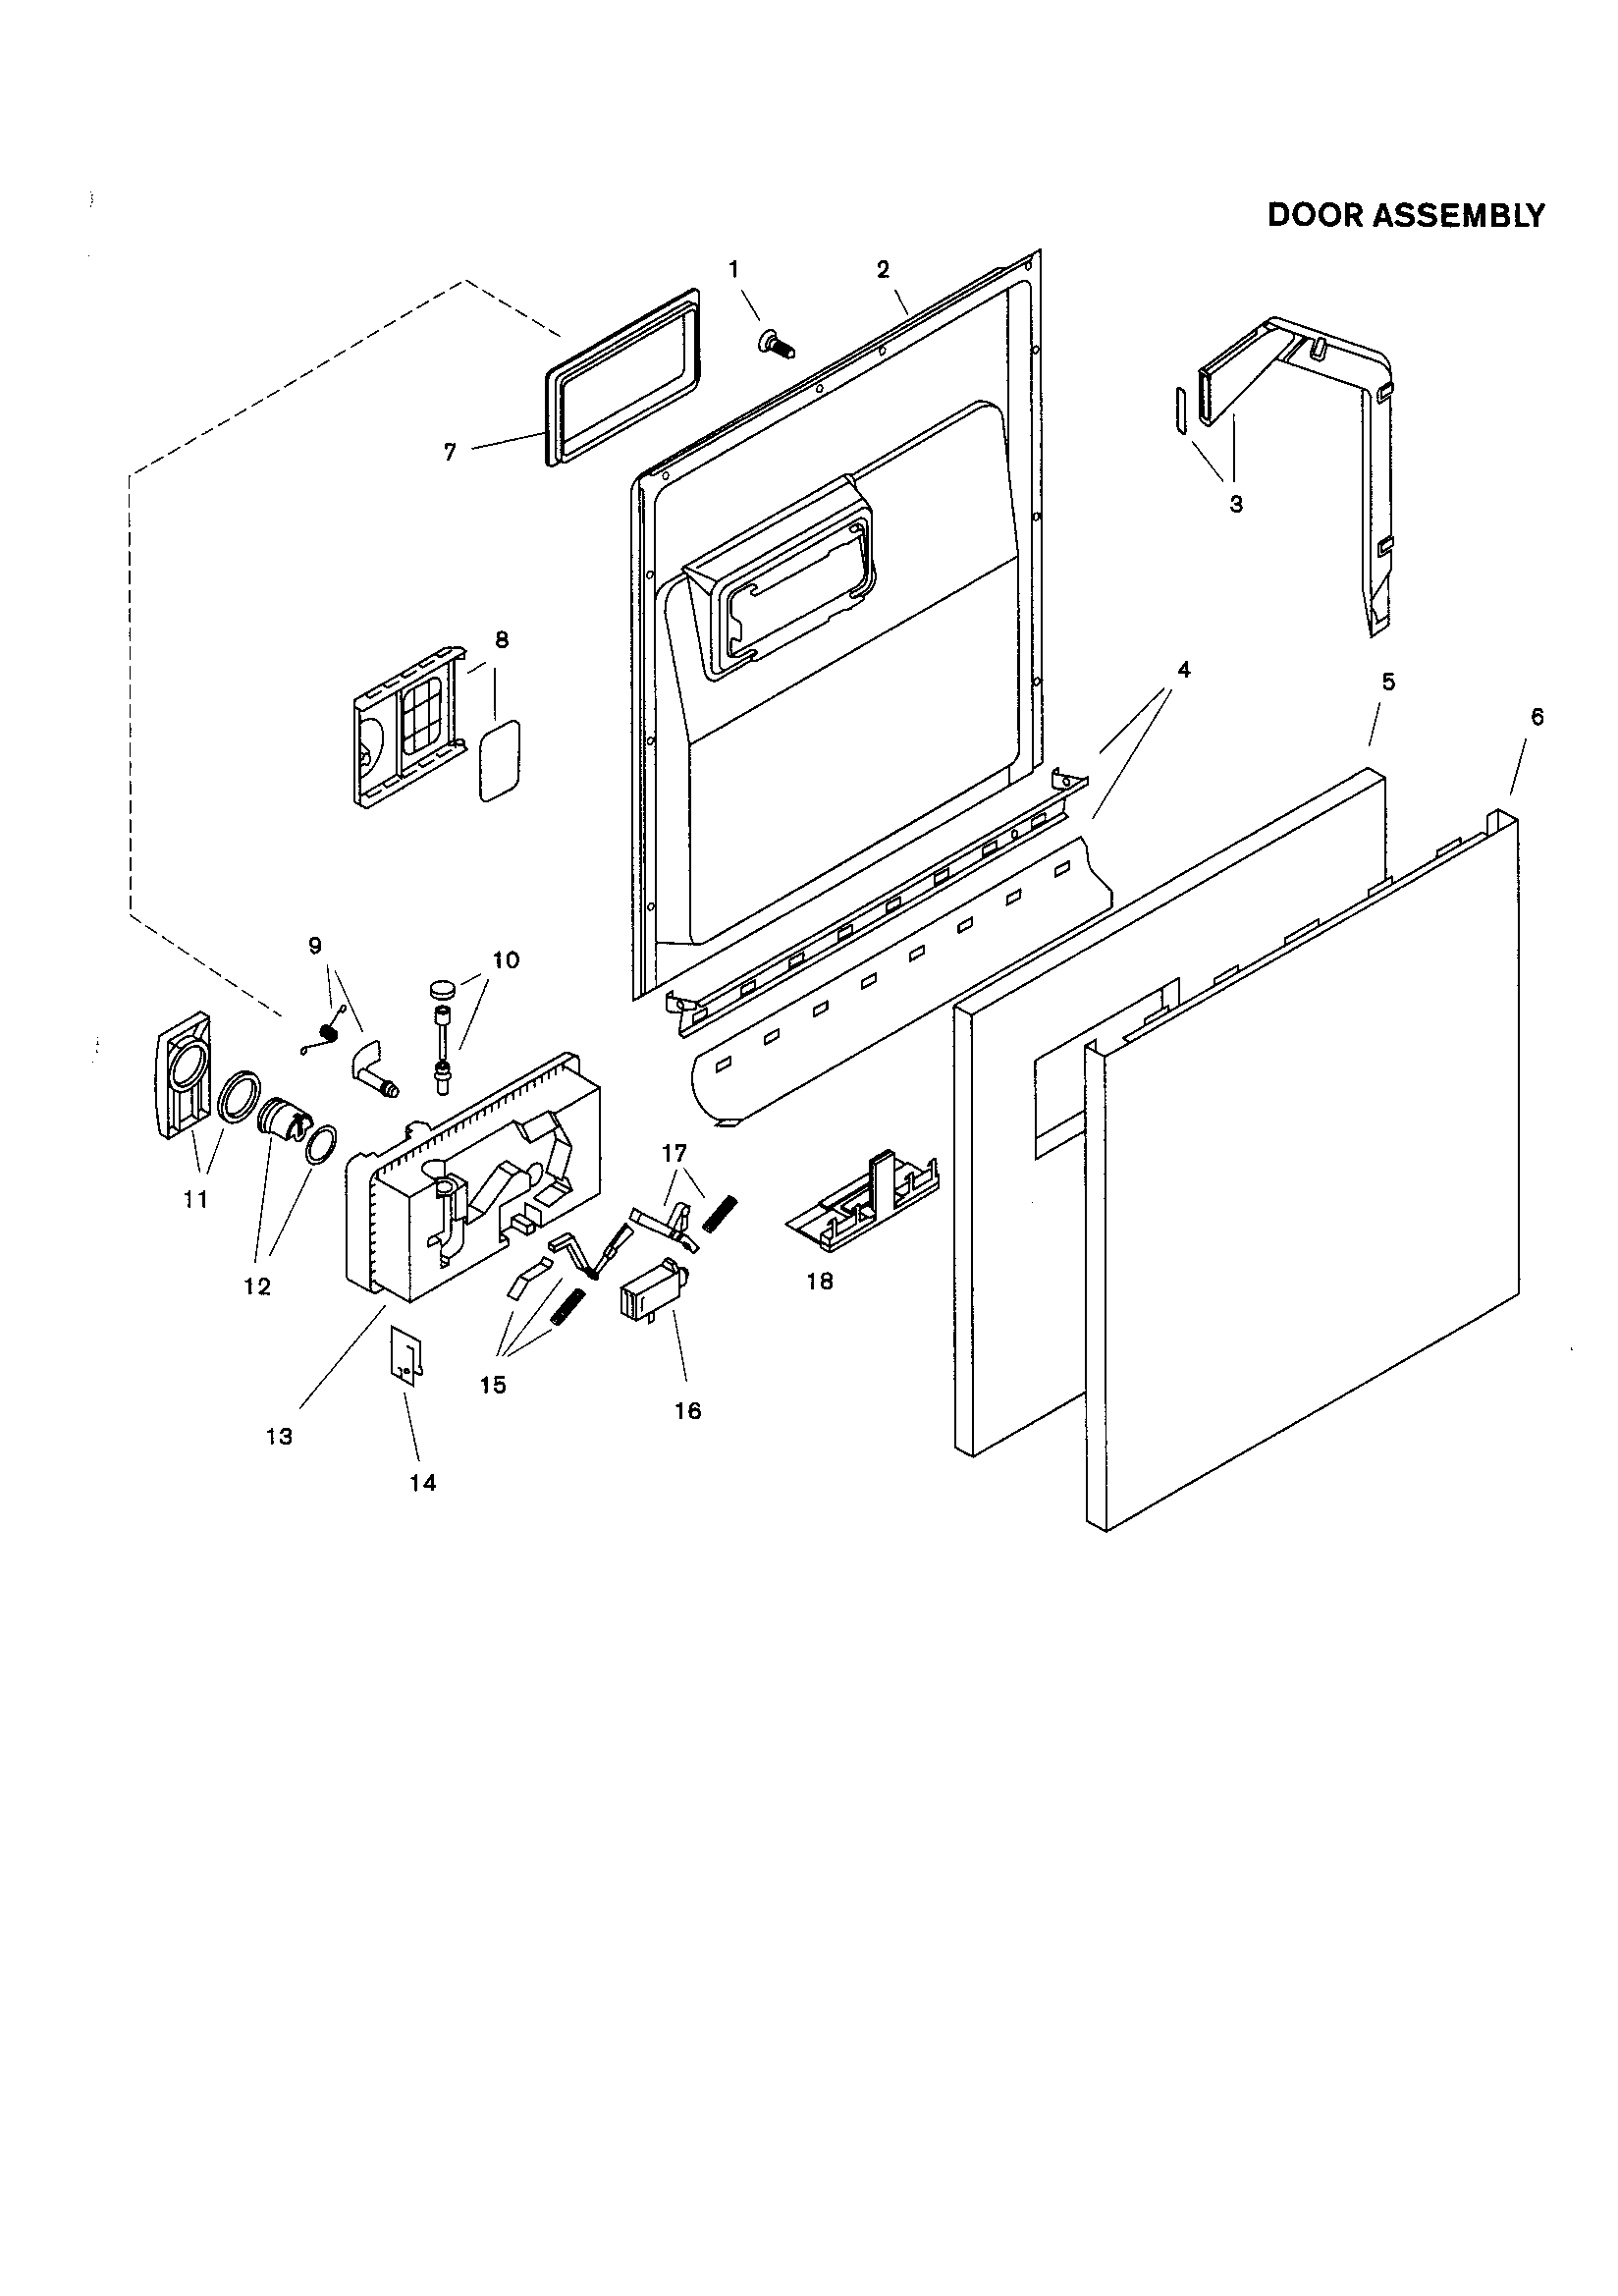 DOOR ASSEMBLY Diagram & Parts List for Model shu4302 Bosch